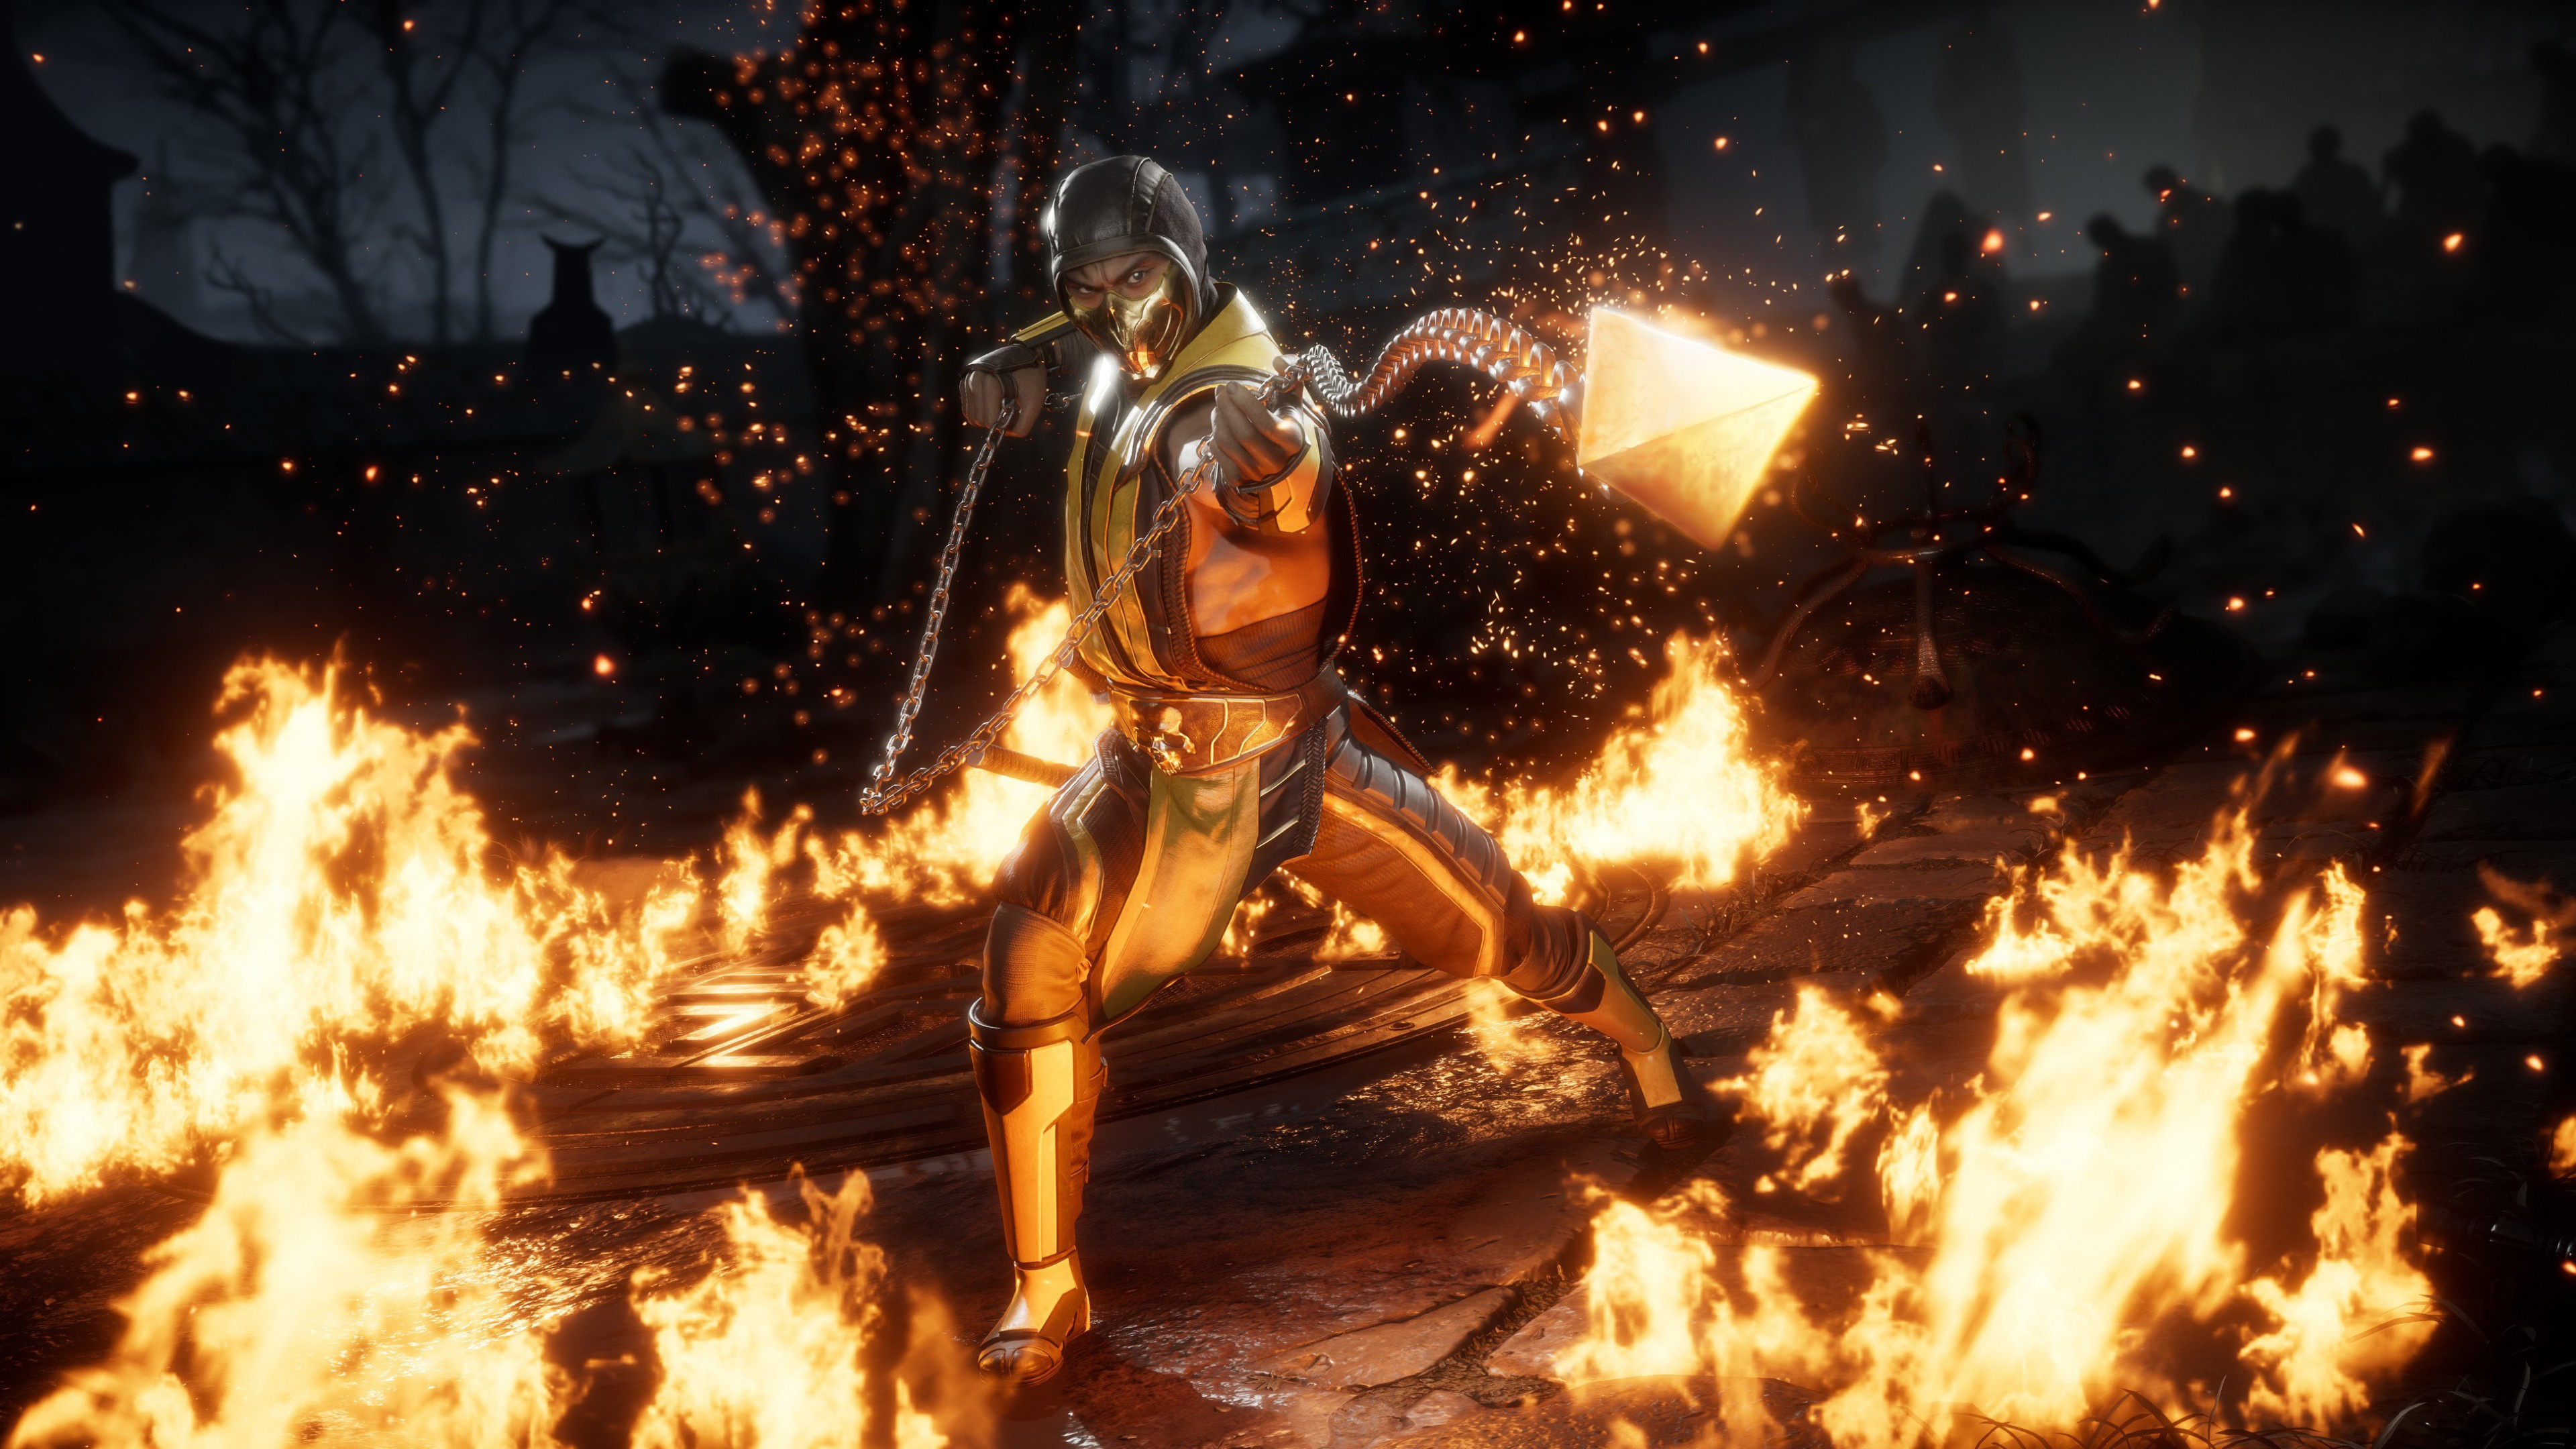 Mortal kombat 11 wallpapers in ultra hd 4k gameranx - Mortal kombat scorpion wallpaper ...